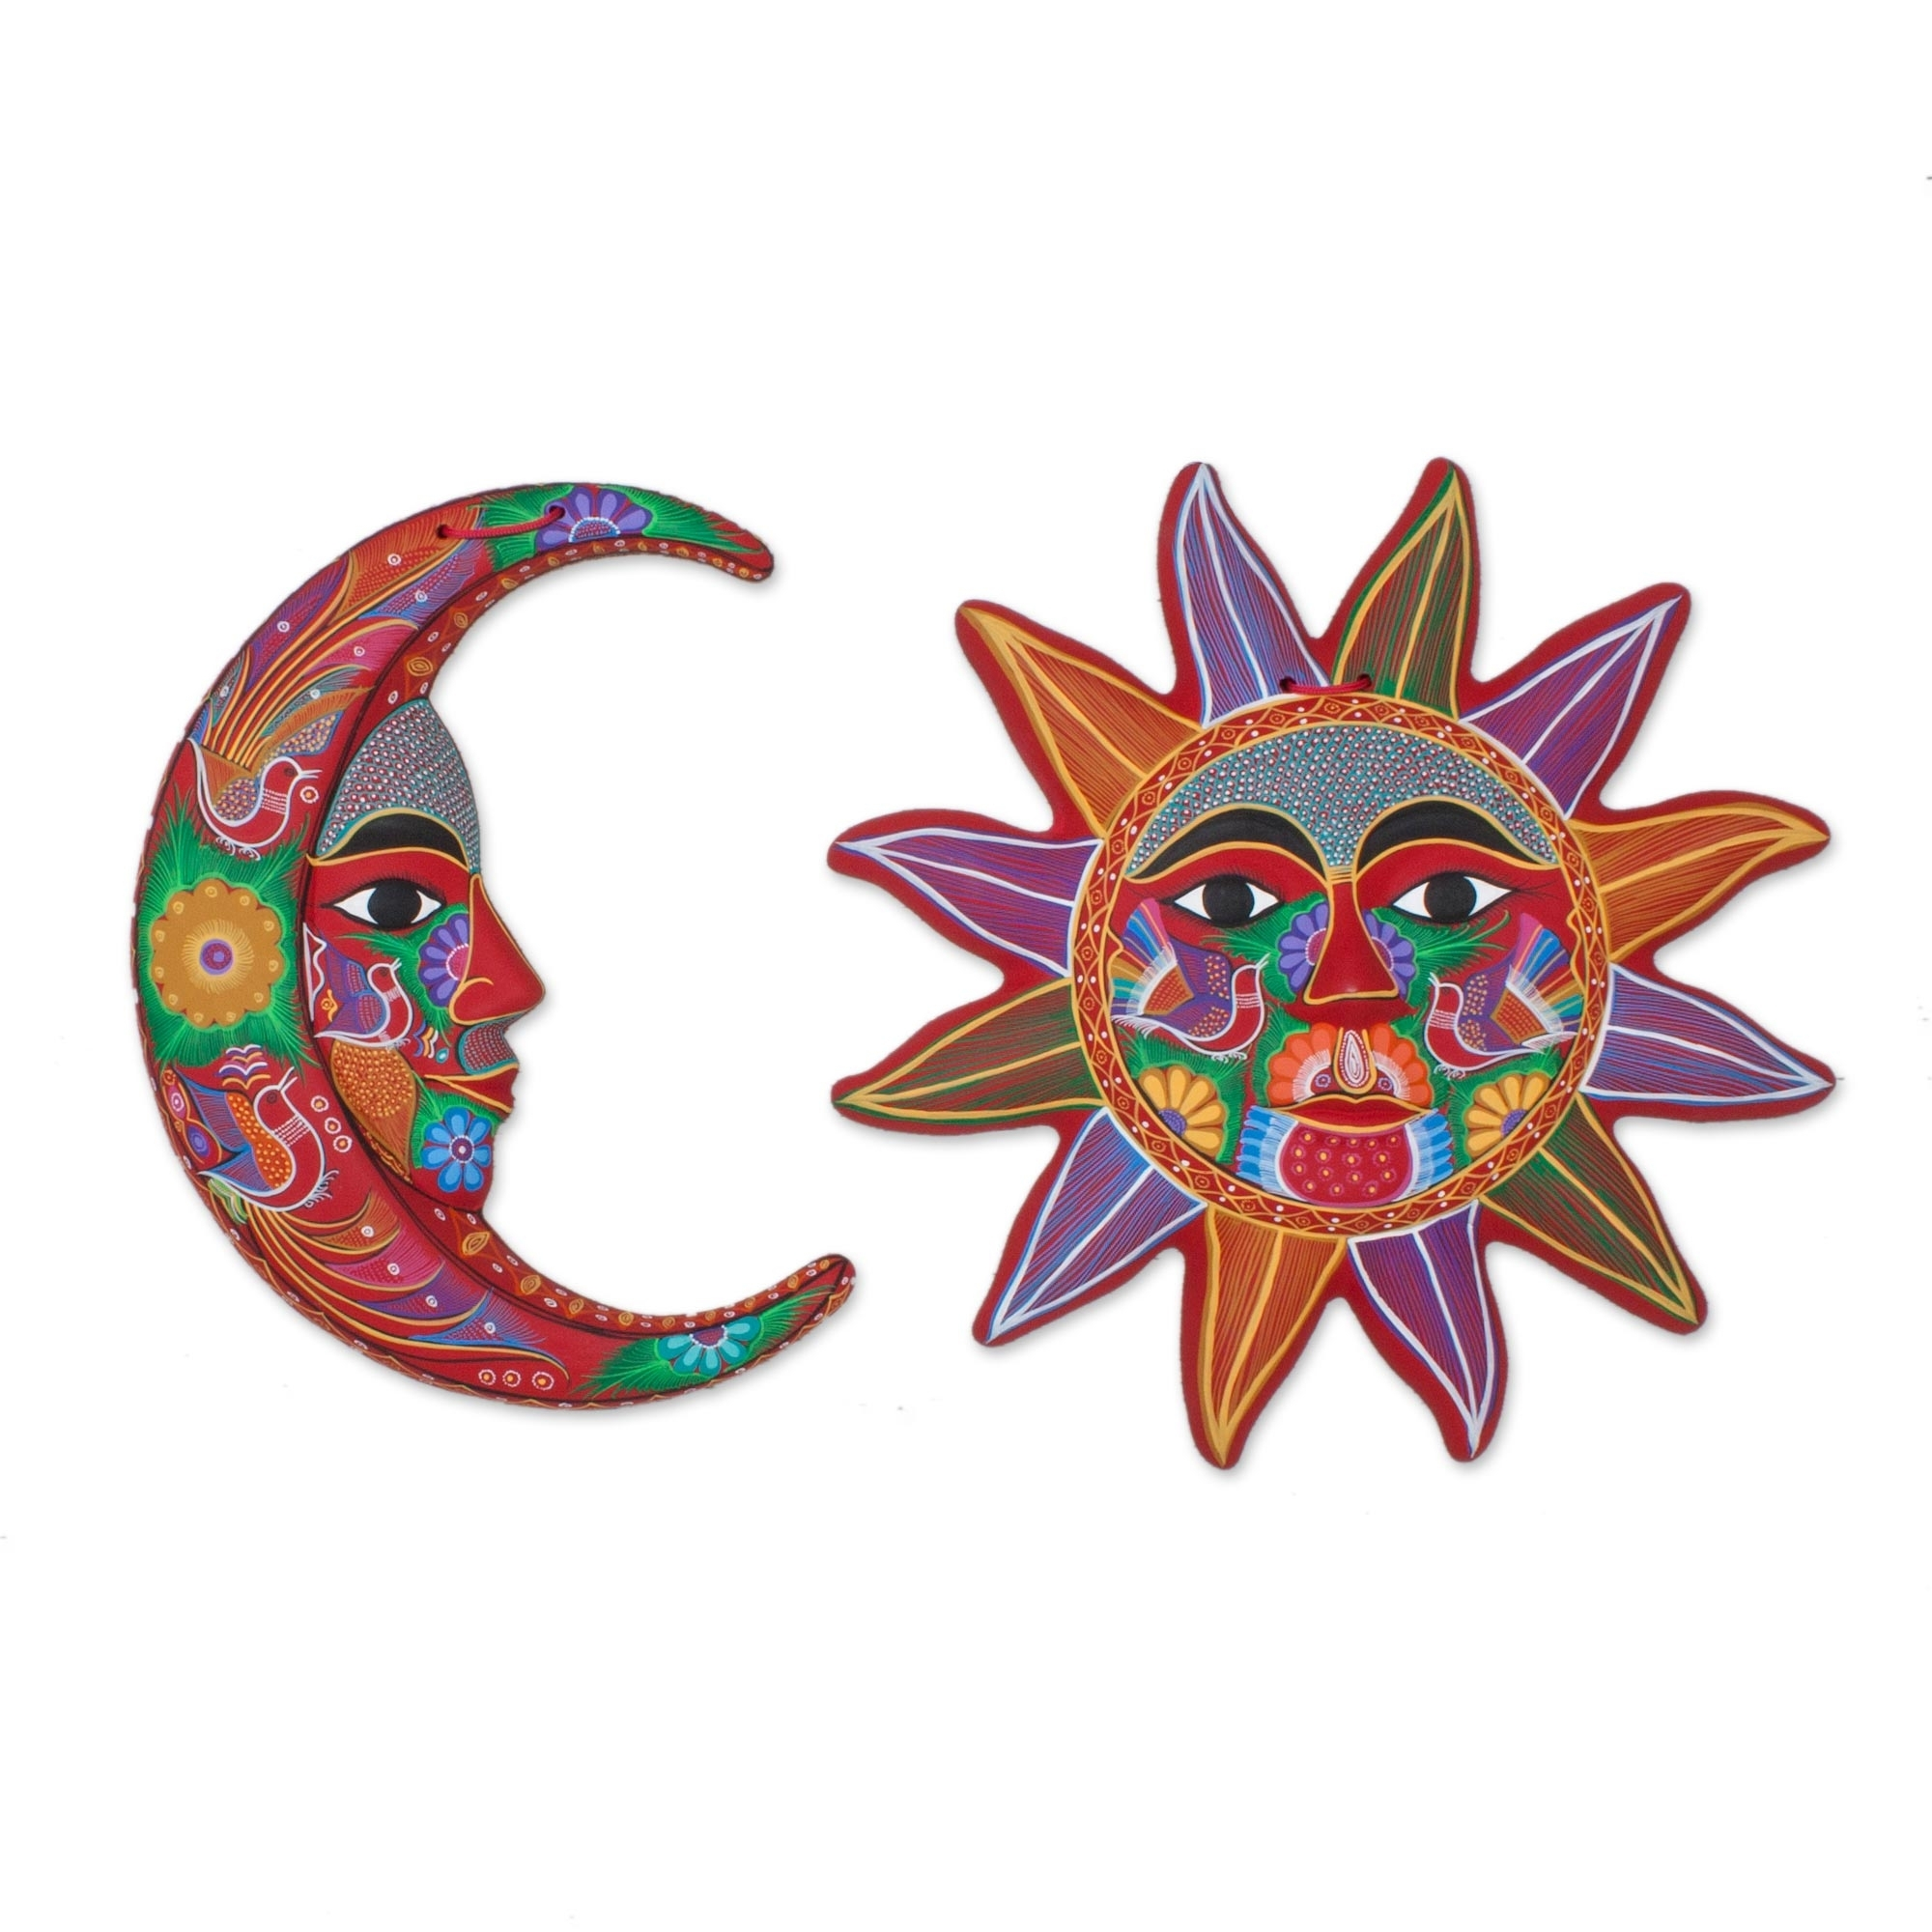 Large Outdoor Metal Sun Wall Art With Plus Together As Well with regard to Outdoor Sun Wall Art (Image 6 of 20)